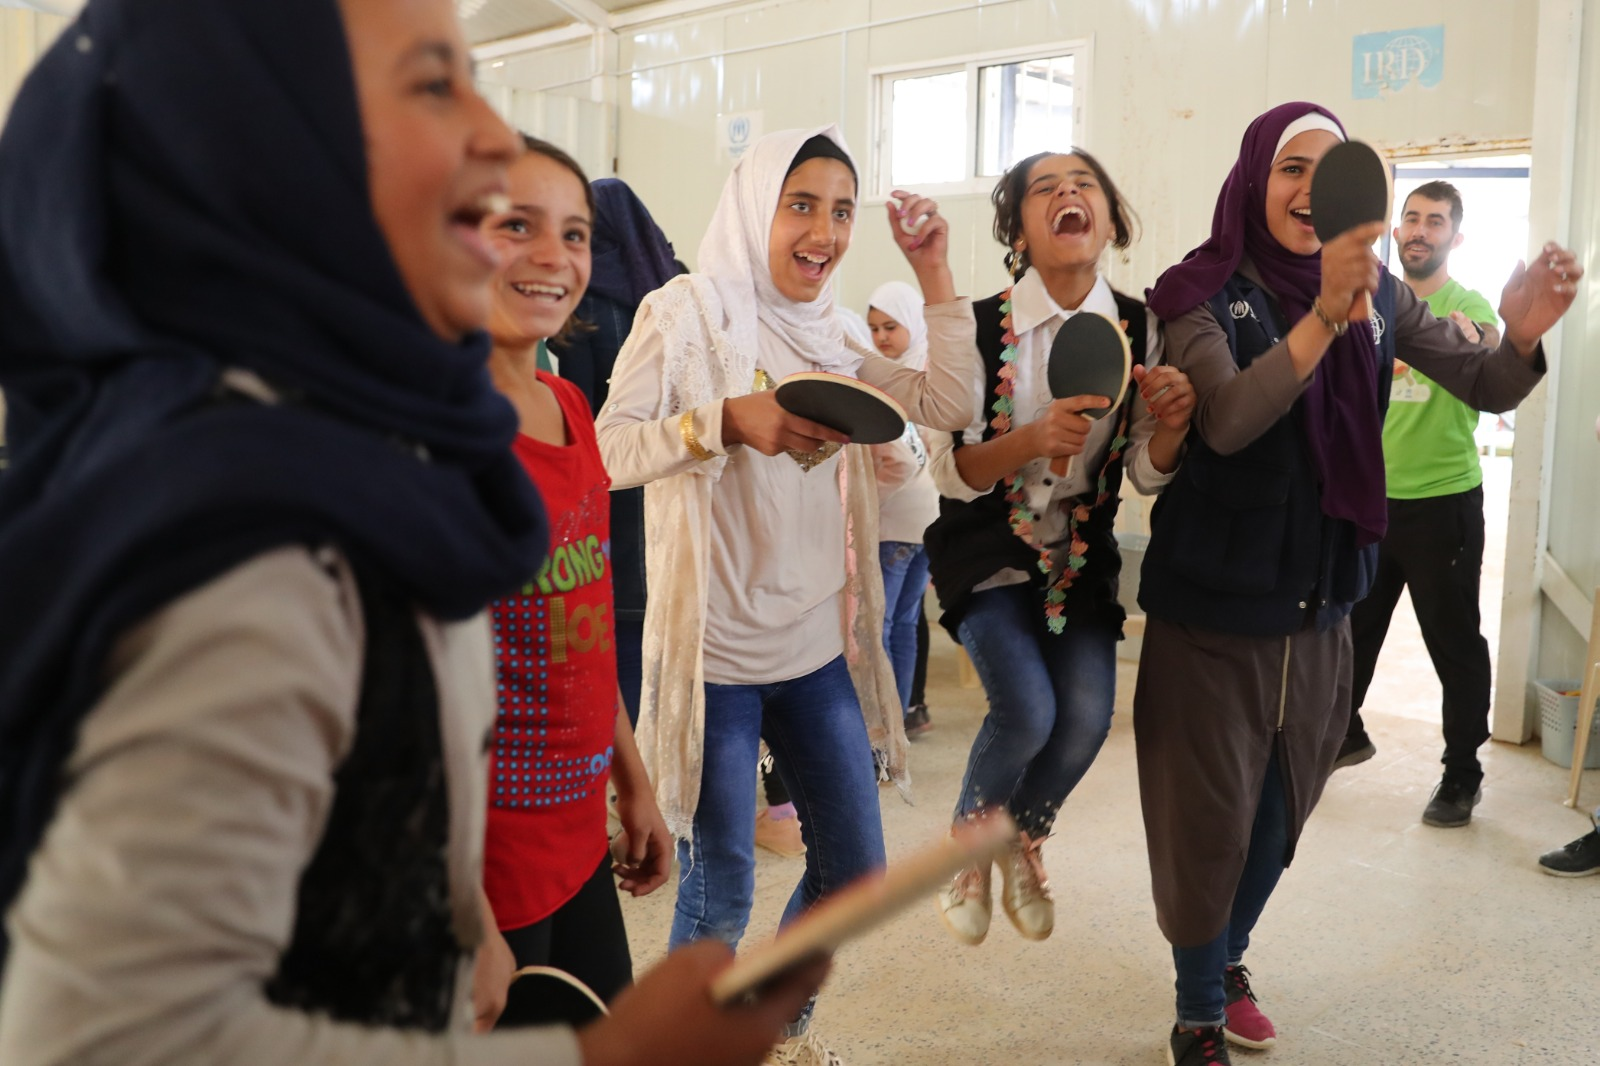 Young women in the Zaatari Refugee Camp in Jordan smile and hold table tennis paddles.